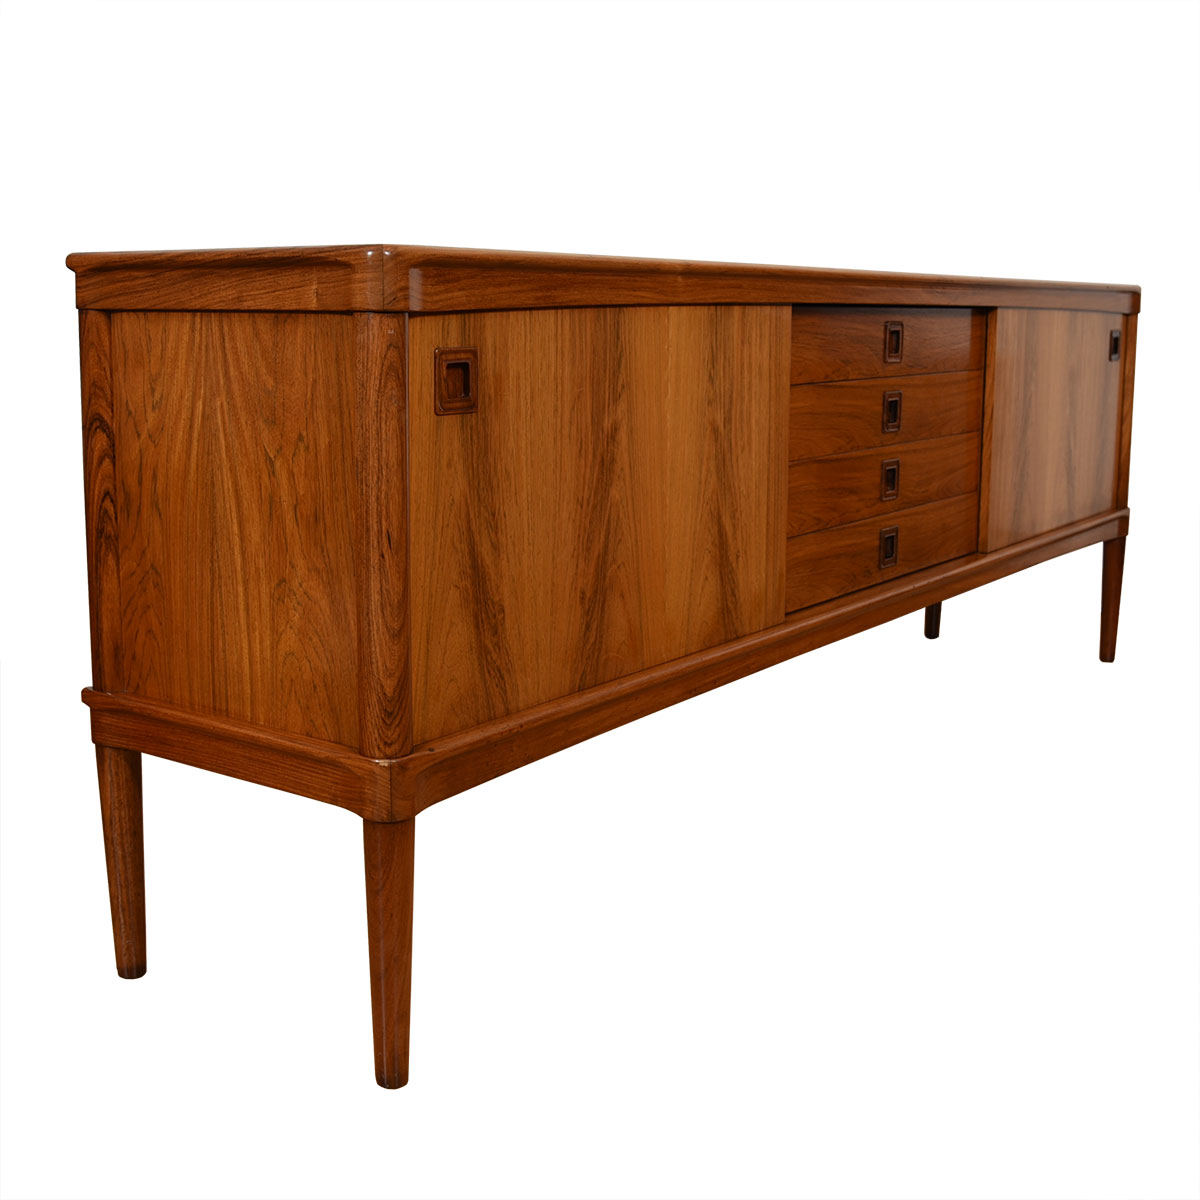 Danish Modern Rosewood Sliding Door Room Divider / Sideboard